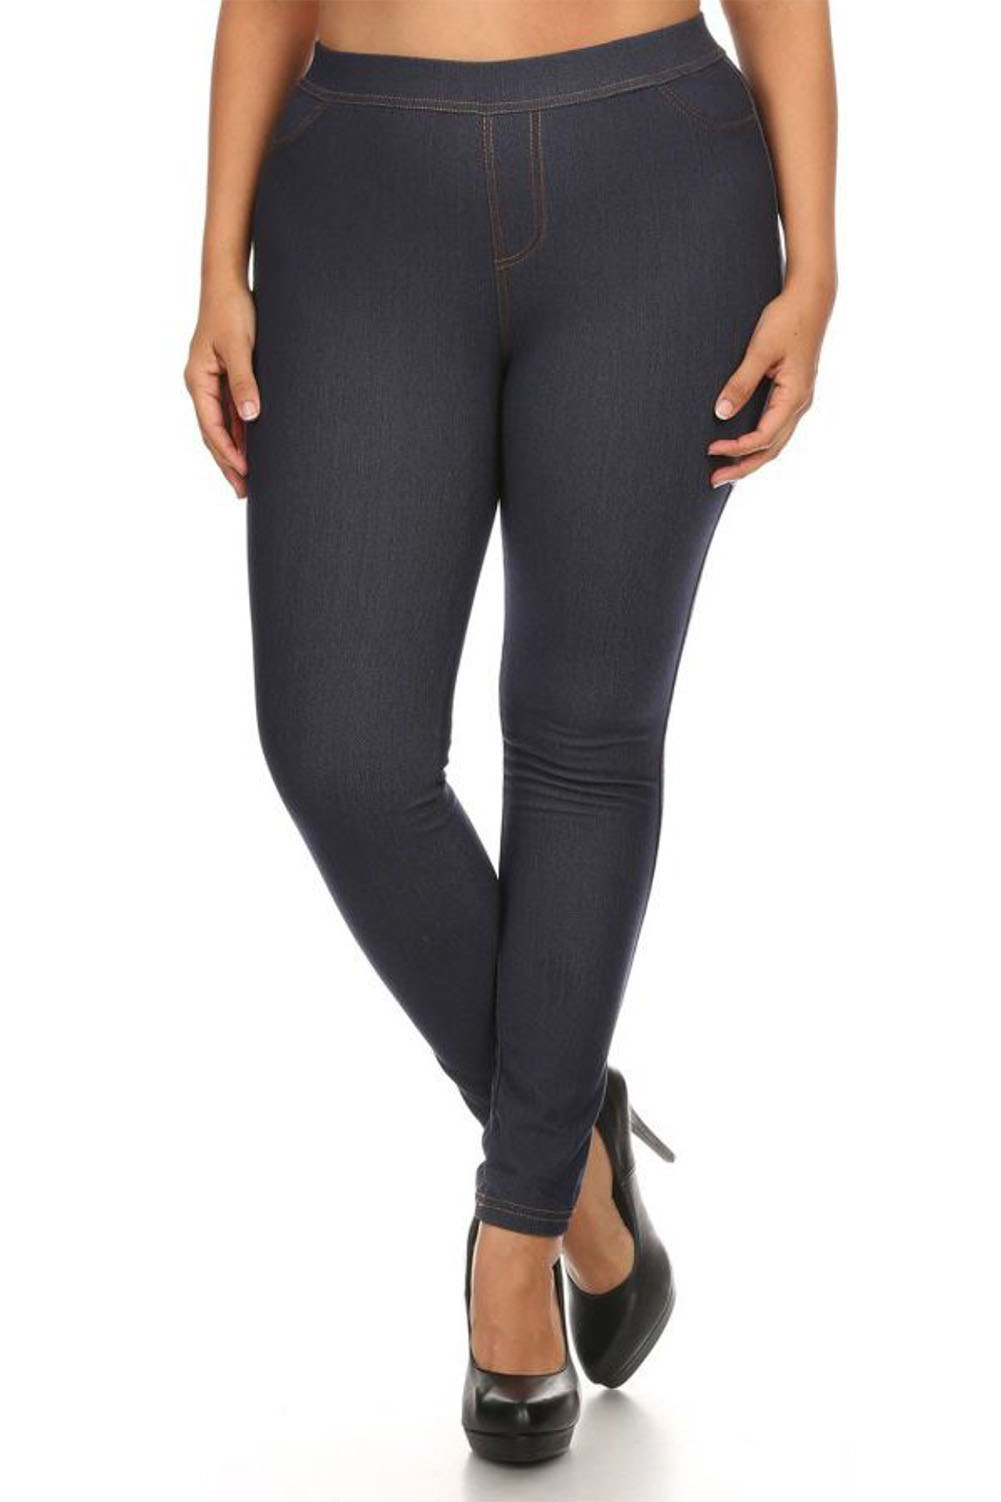 These stretch knit leggings are so comfy, you'll feel amazing in them all day long. Made with an elastic waistband, you can bend and move freely without ever feeling bound in. A great pairing for our perfect tunic tops, athleisure wear or for wearing around the house.